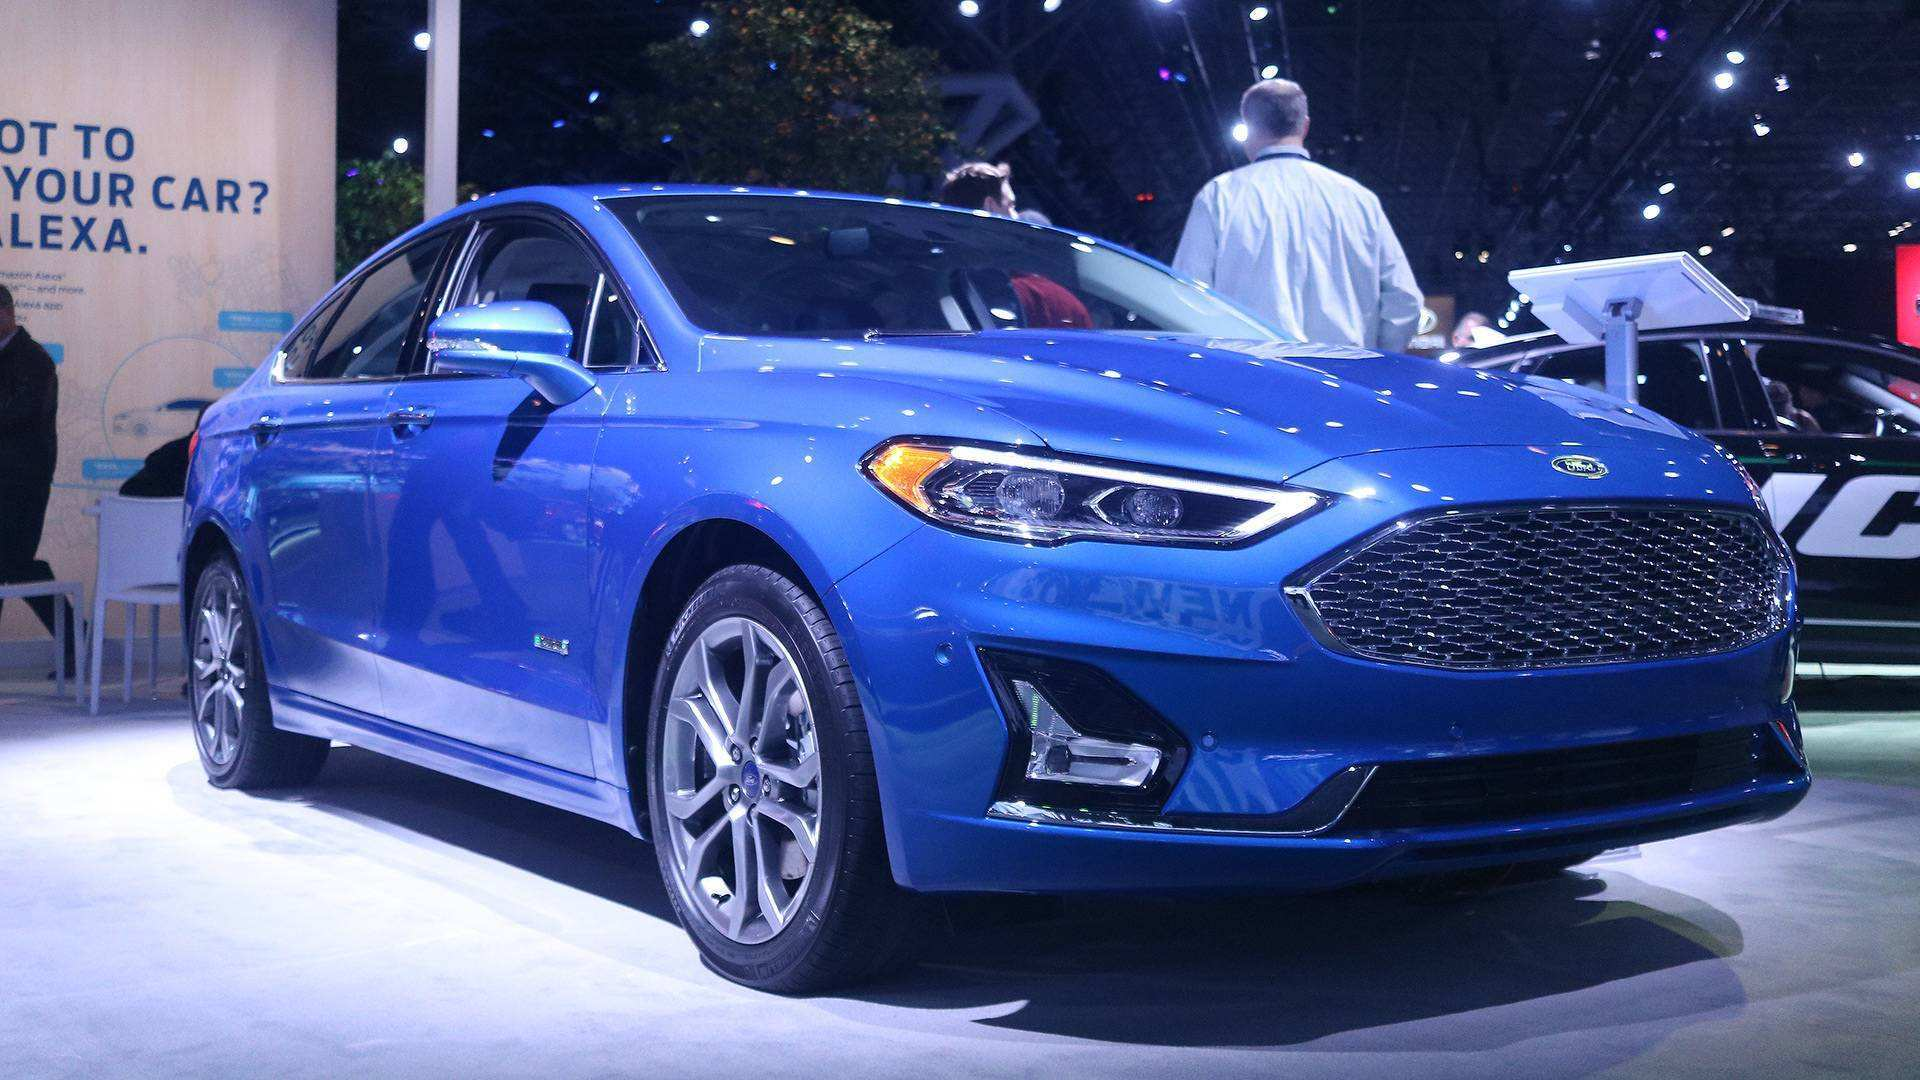 36 New 2019 The Spy Shots Ford Fusion Interior